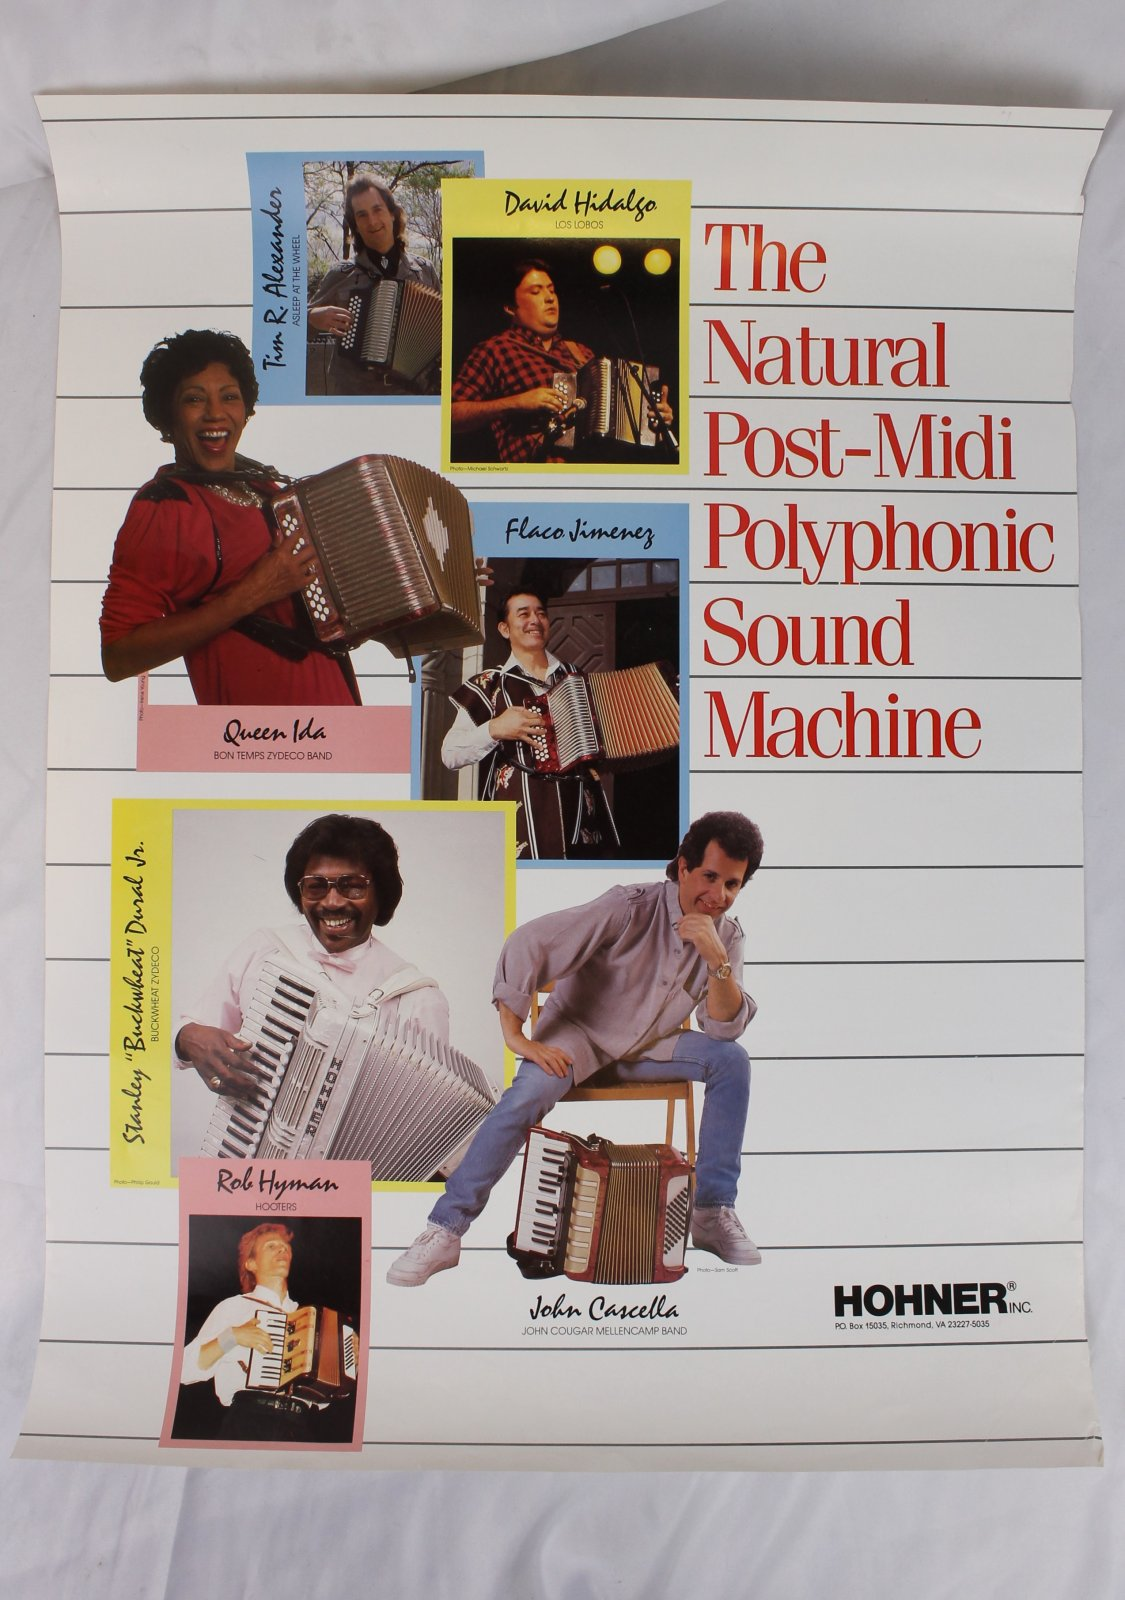 24 x 18 Poster - Hohner: The Natural Post-Midi Polyphonic Sound Machine